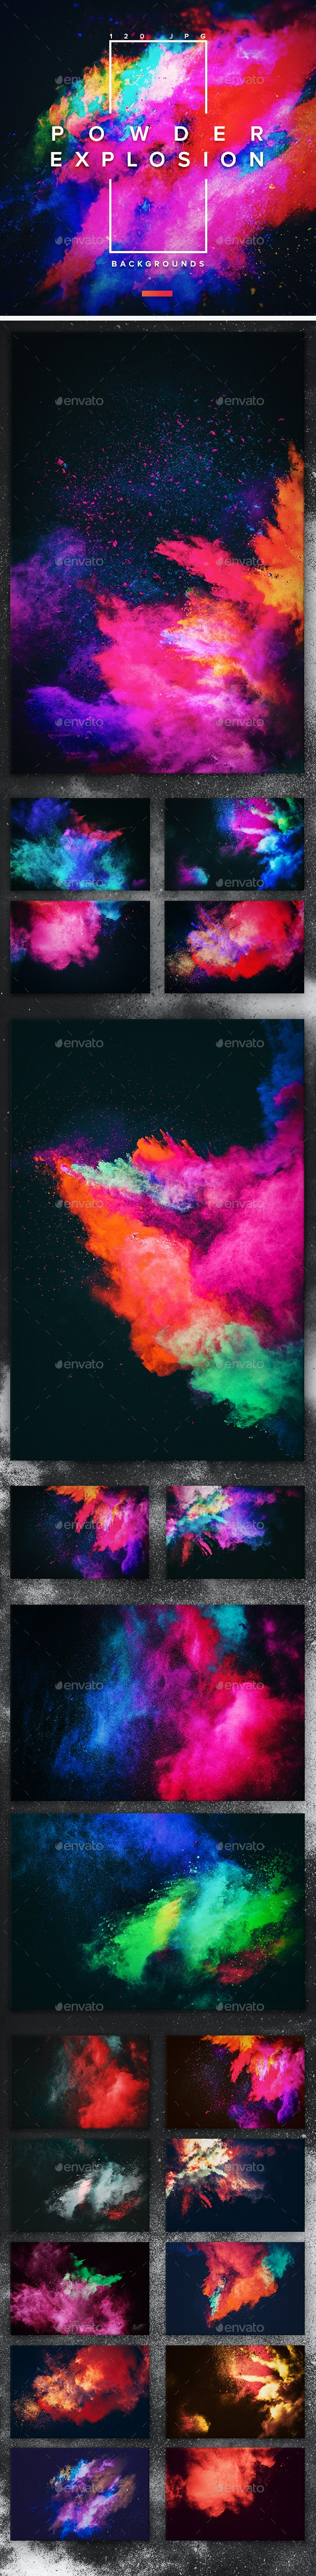 120 Powder Explosion Backgrounds - Abstract Backgrounds